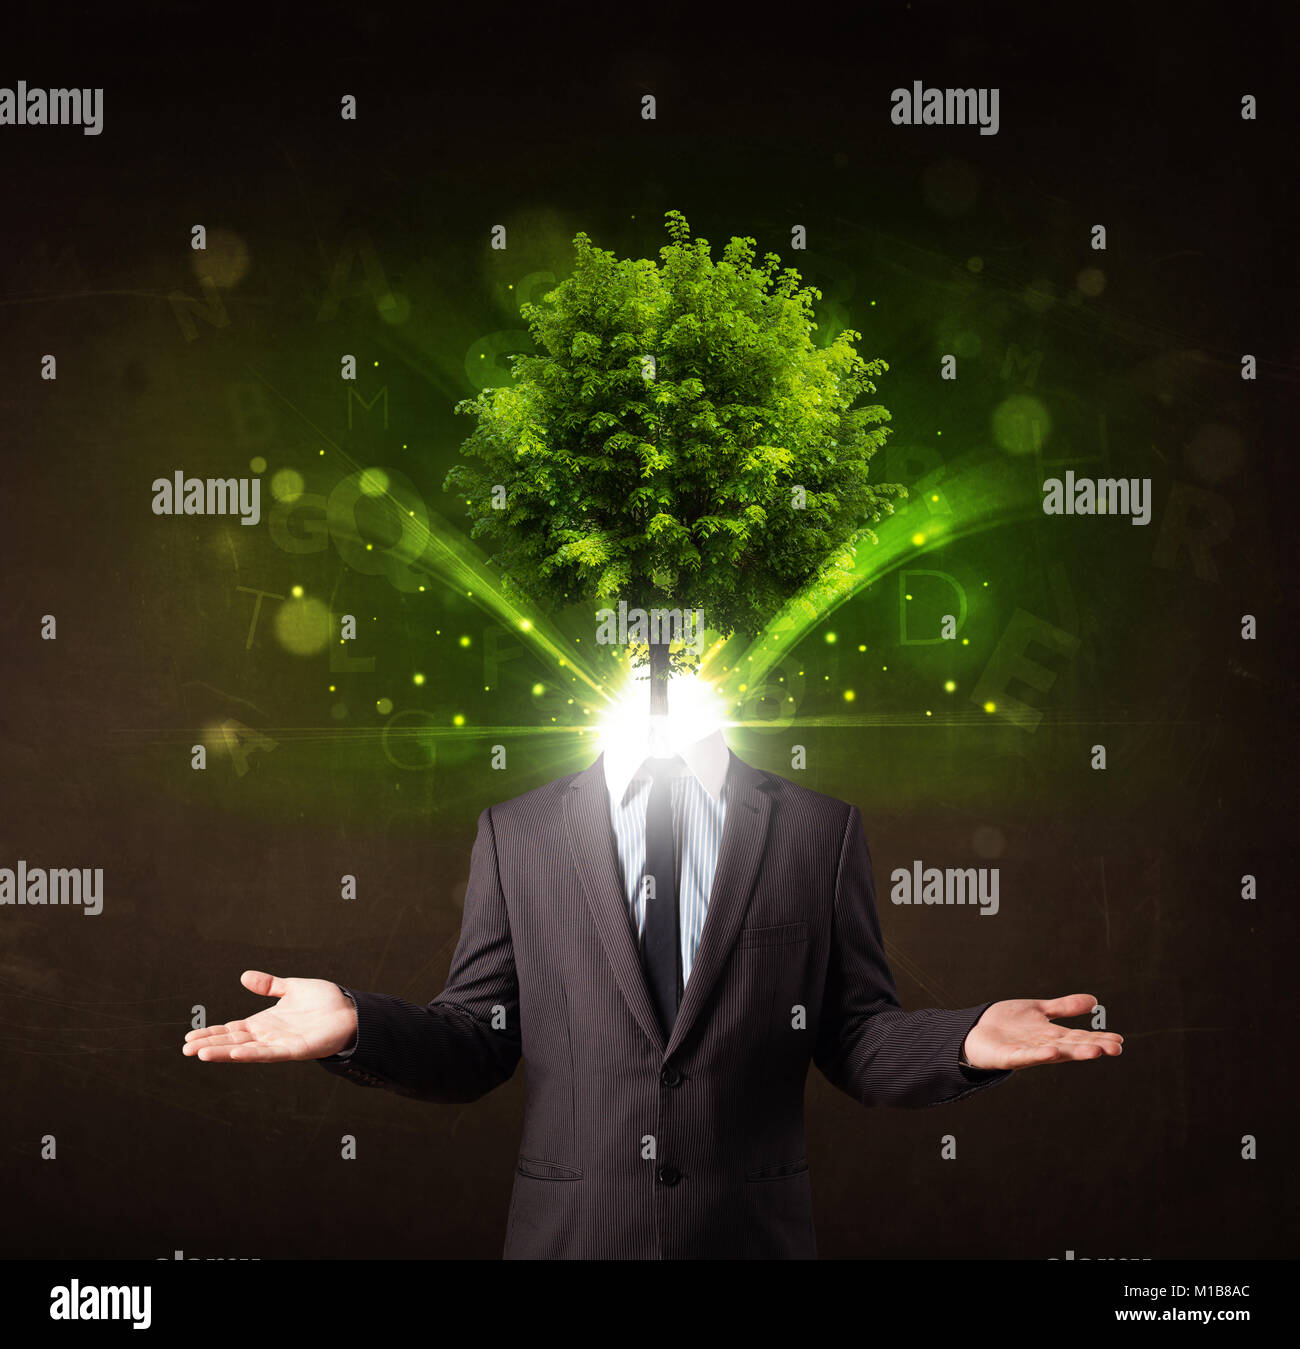 Man with green tree head concept on brown background - Stock Image